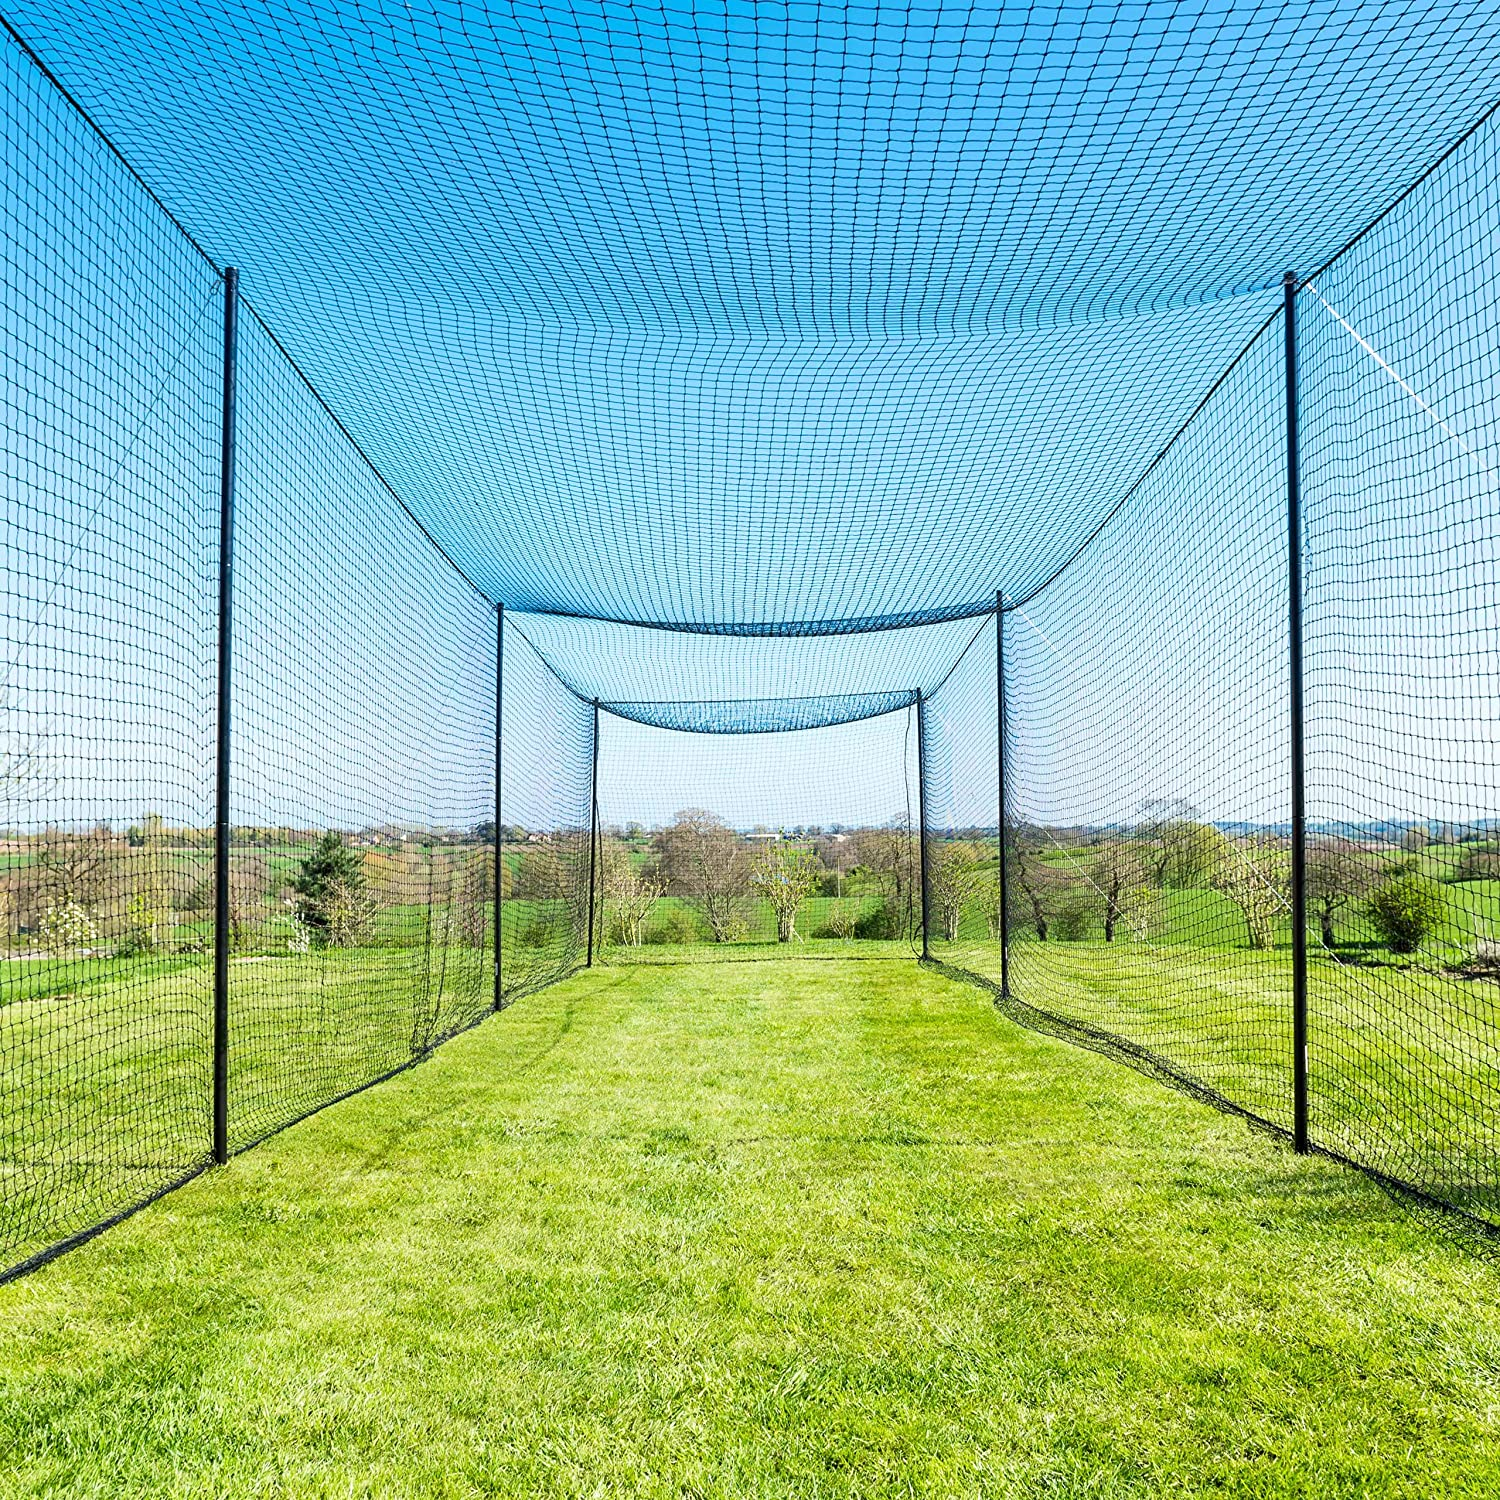 Fortress Ultimate Baseball Batting Cage [20', 35', 55', 70'] | #42 Grade Net with Steel Poles | Baseball & Softball Cage & Netting | Softball Batting Cage (20' Batting Cage Package) : Sports & Outdoors